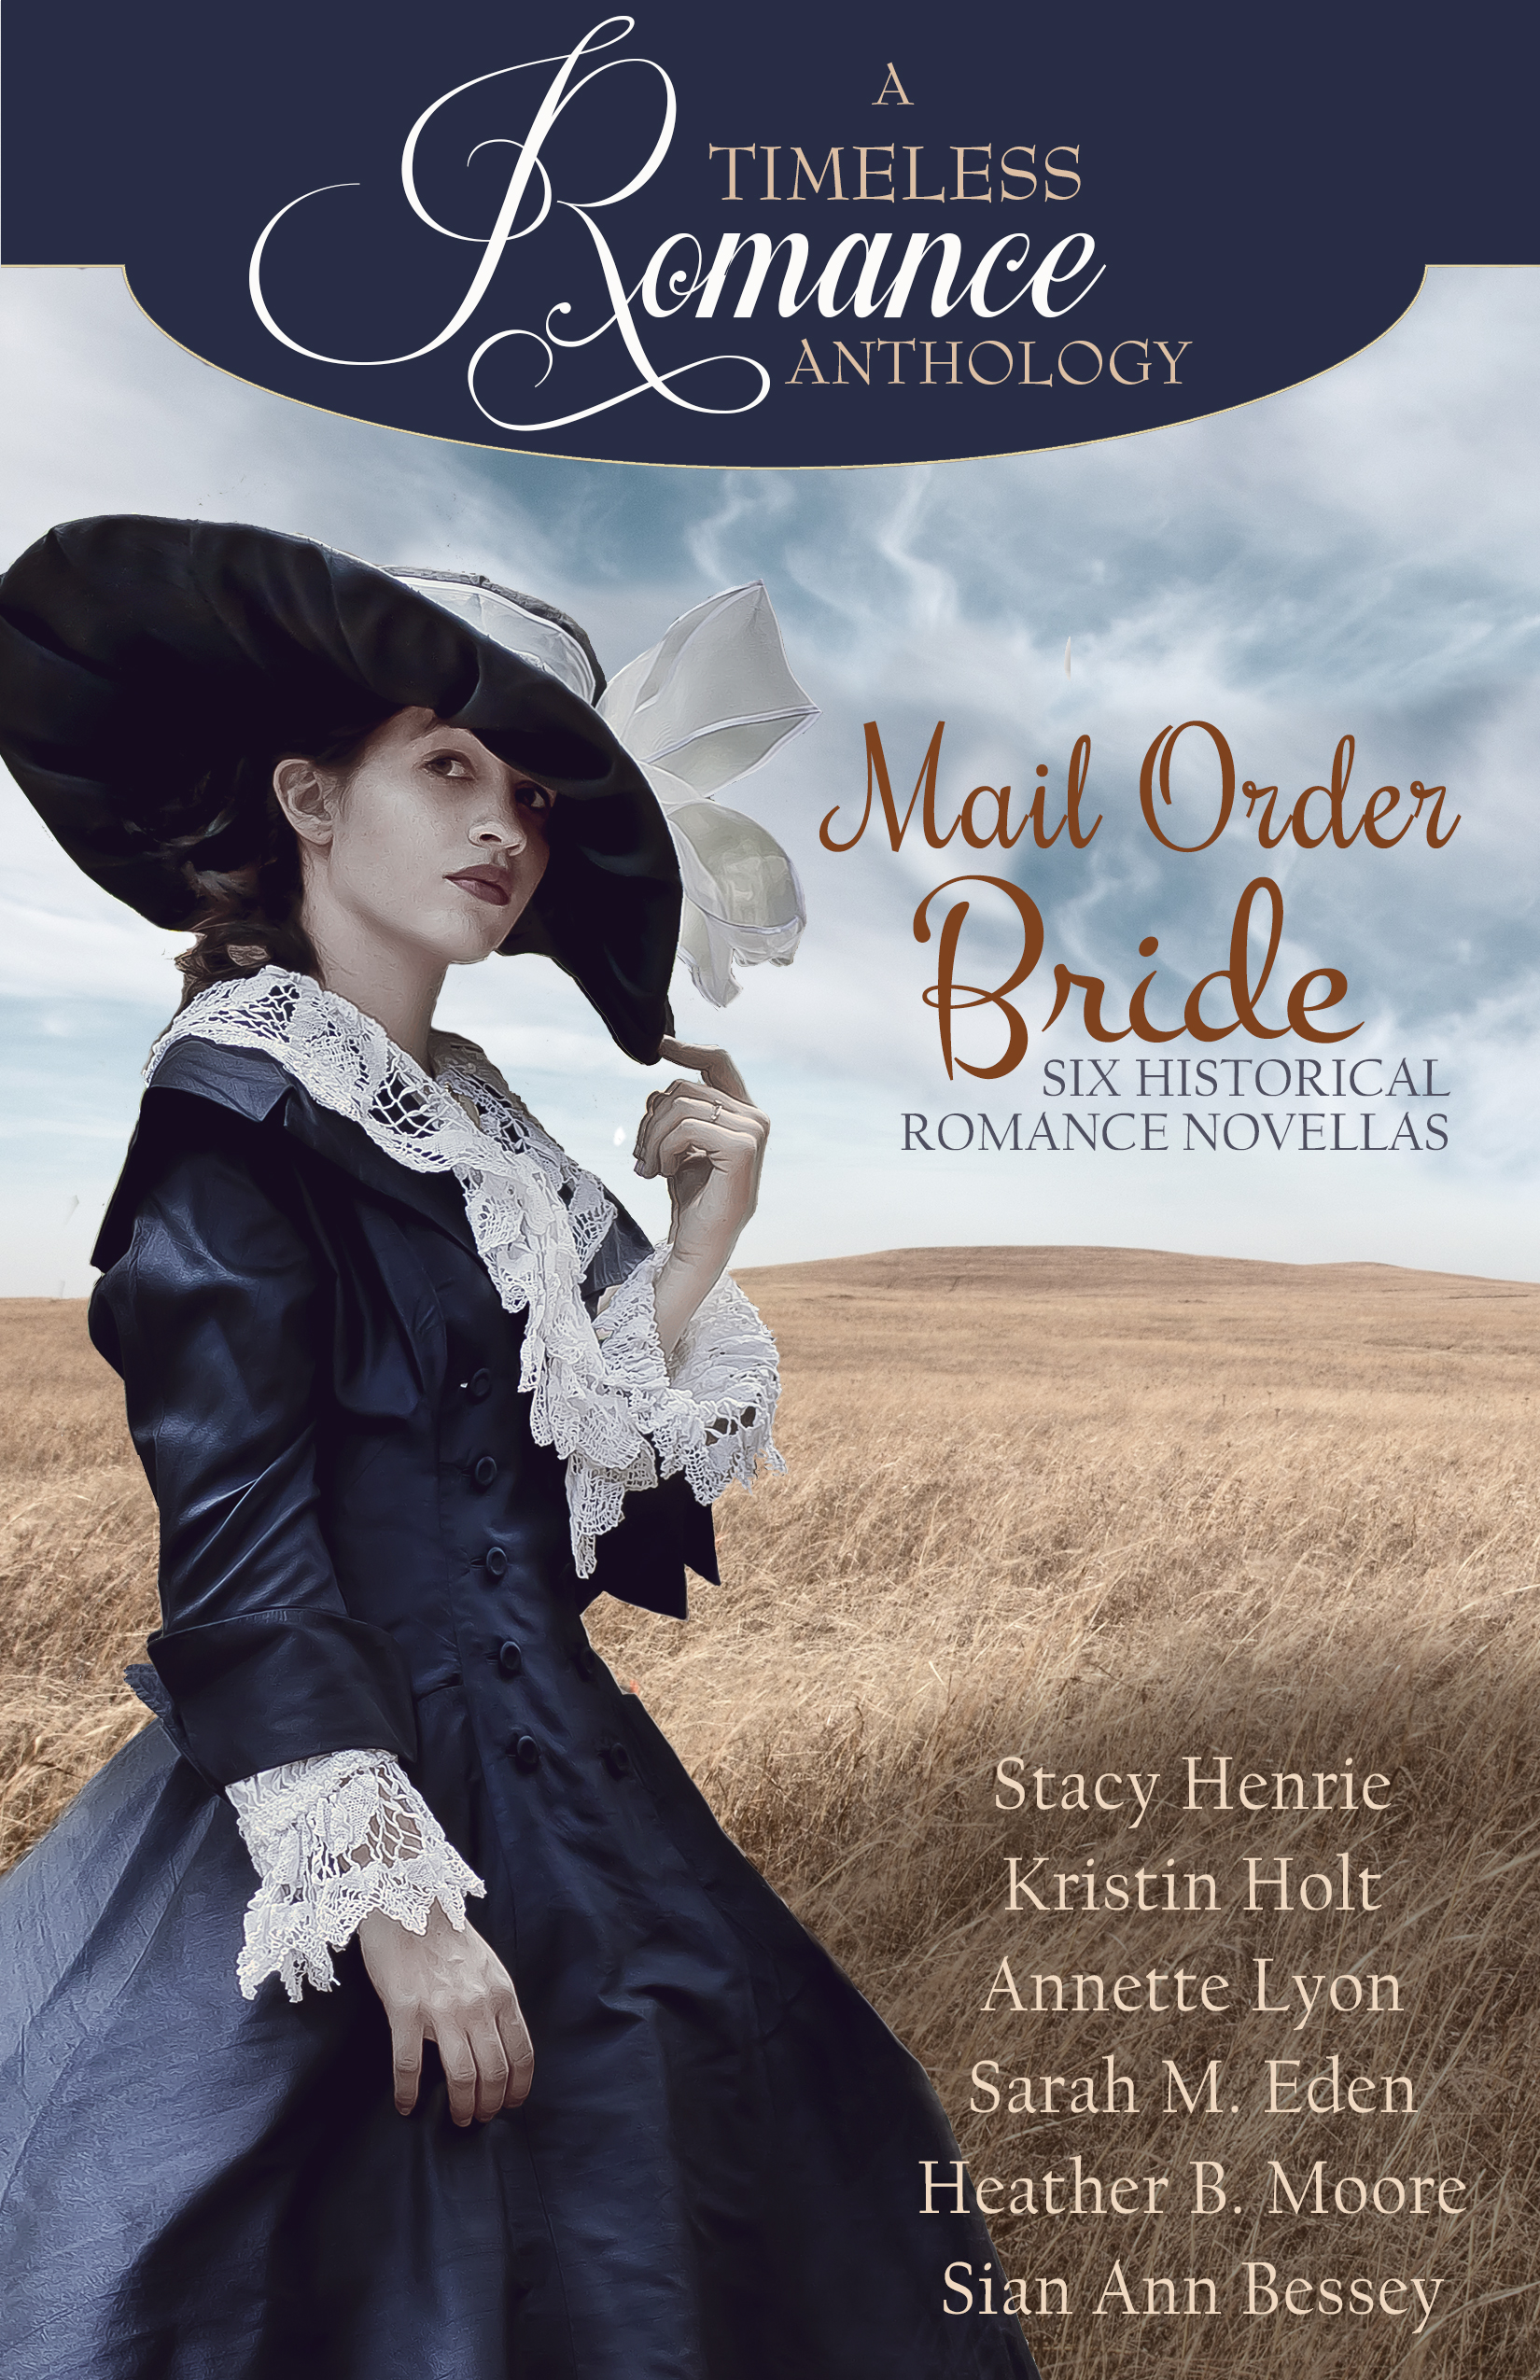 Kristin Holt | Book Cover of Mail Order Bride Collection: A Timeless Romance Anthology